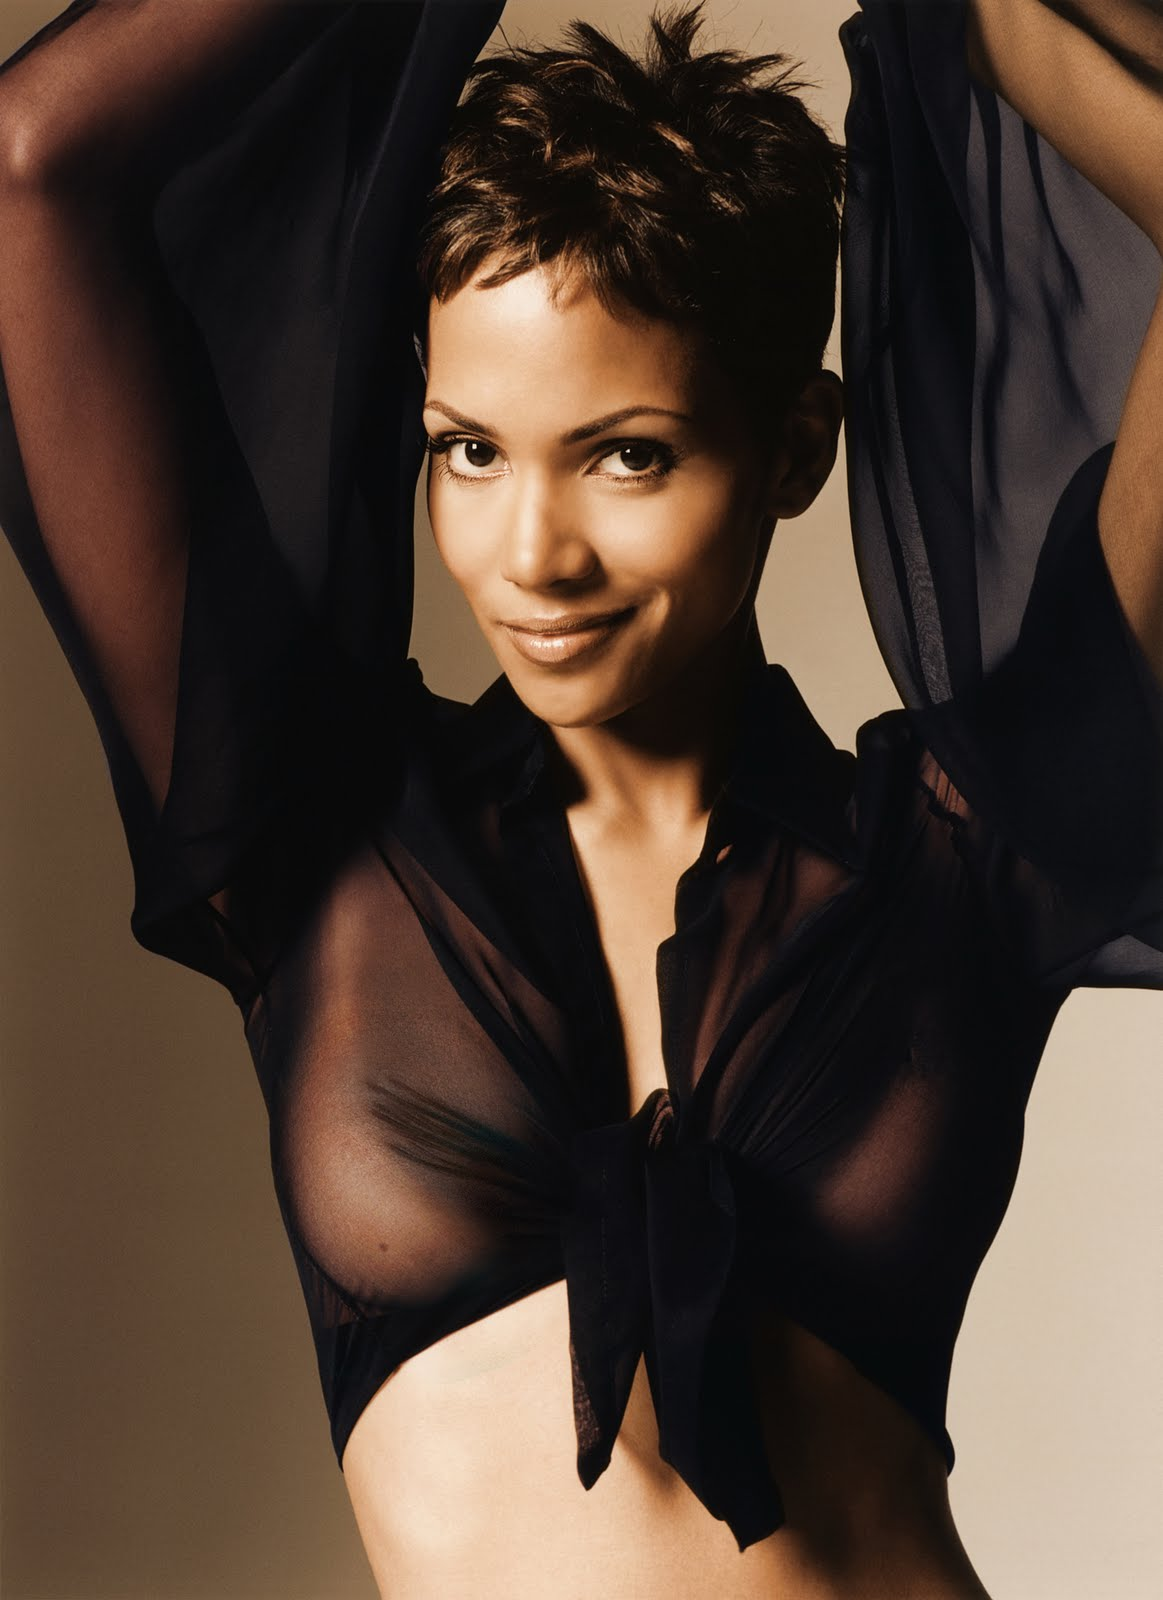 Halle berry actress